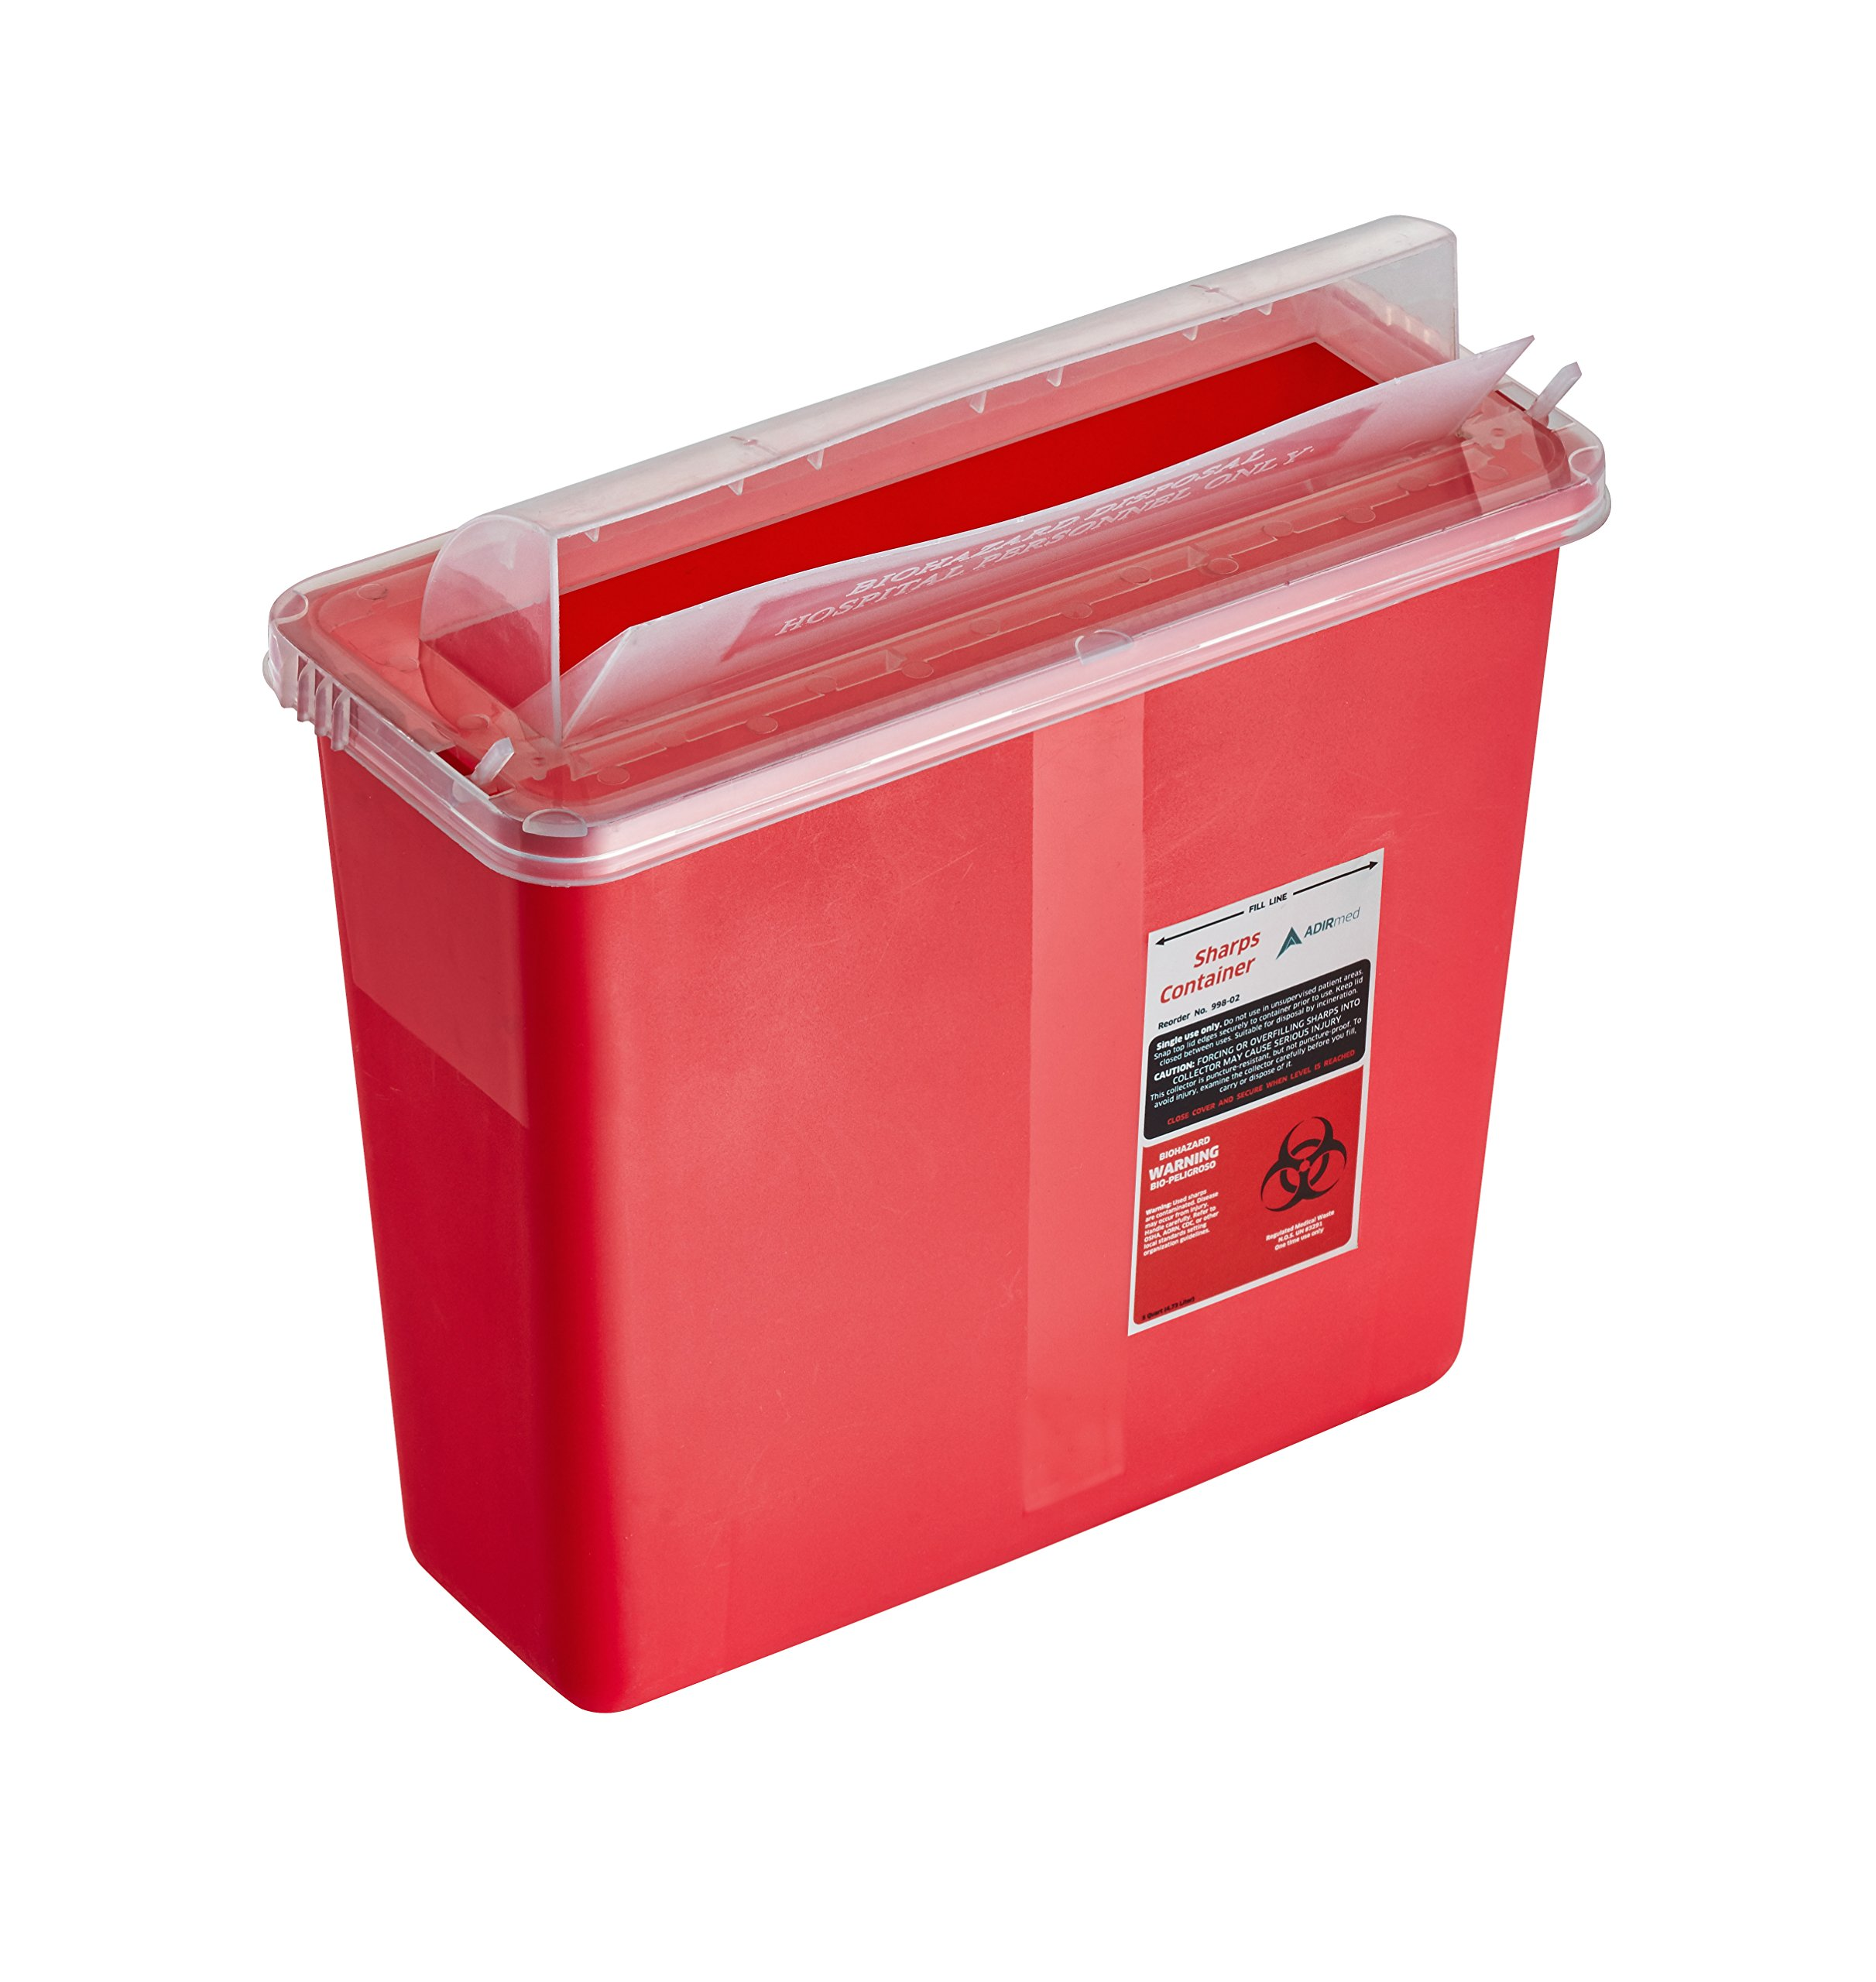 AdirMed Sharps & Needle Biohazard Disposal Container - 5 Quart - Mailbox Style Horizontal Lid - 1 Pack by Adir Med (Image #3)